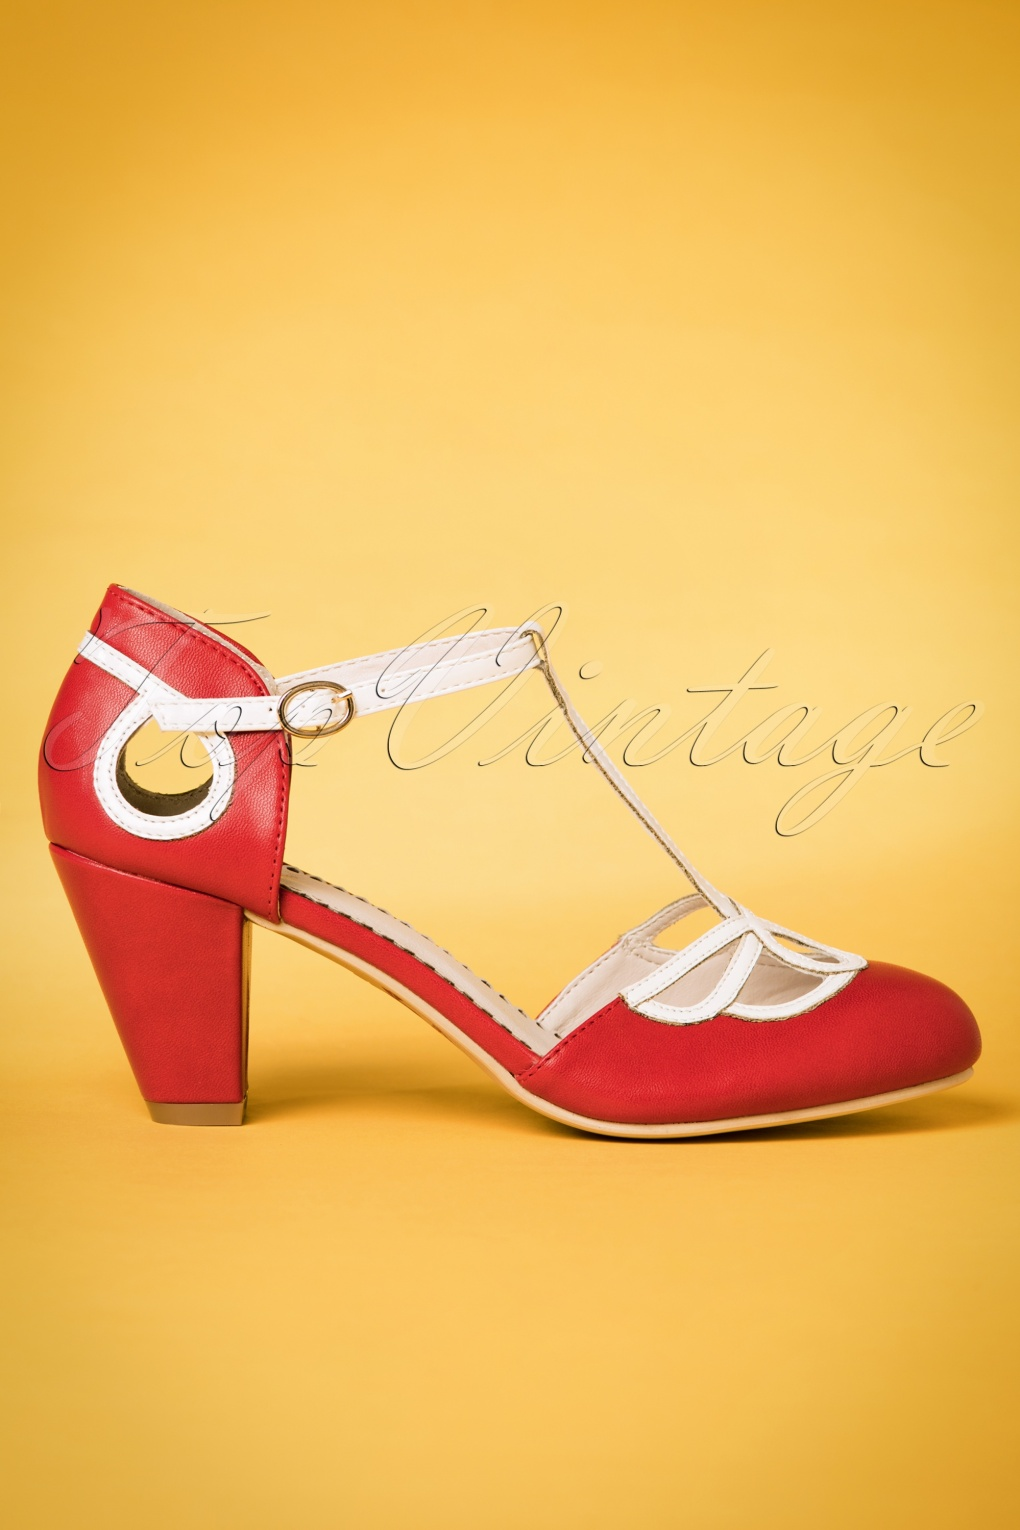 Vintage Style Shoes, Vintage Inspired Shoes 50s Lively Aimee T-Strap Pumps in Red £50.84 AT vintagedancer.com